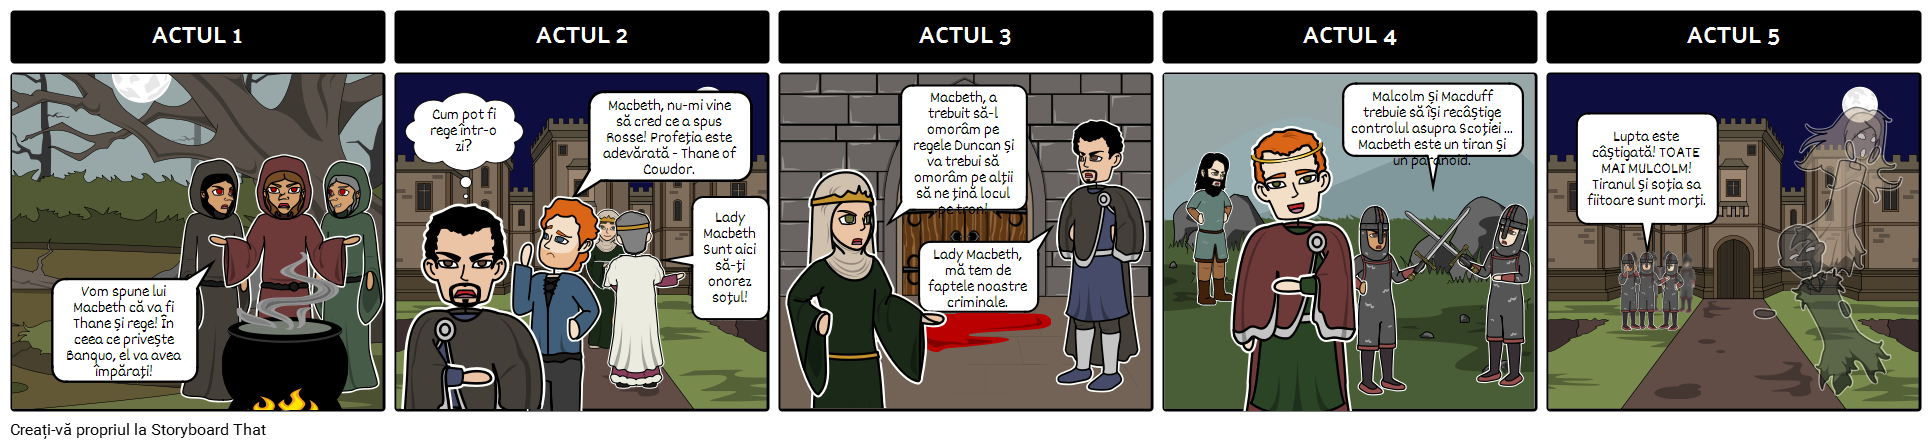 Macbeth 5 Act Structura Storyboard